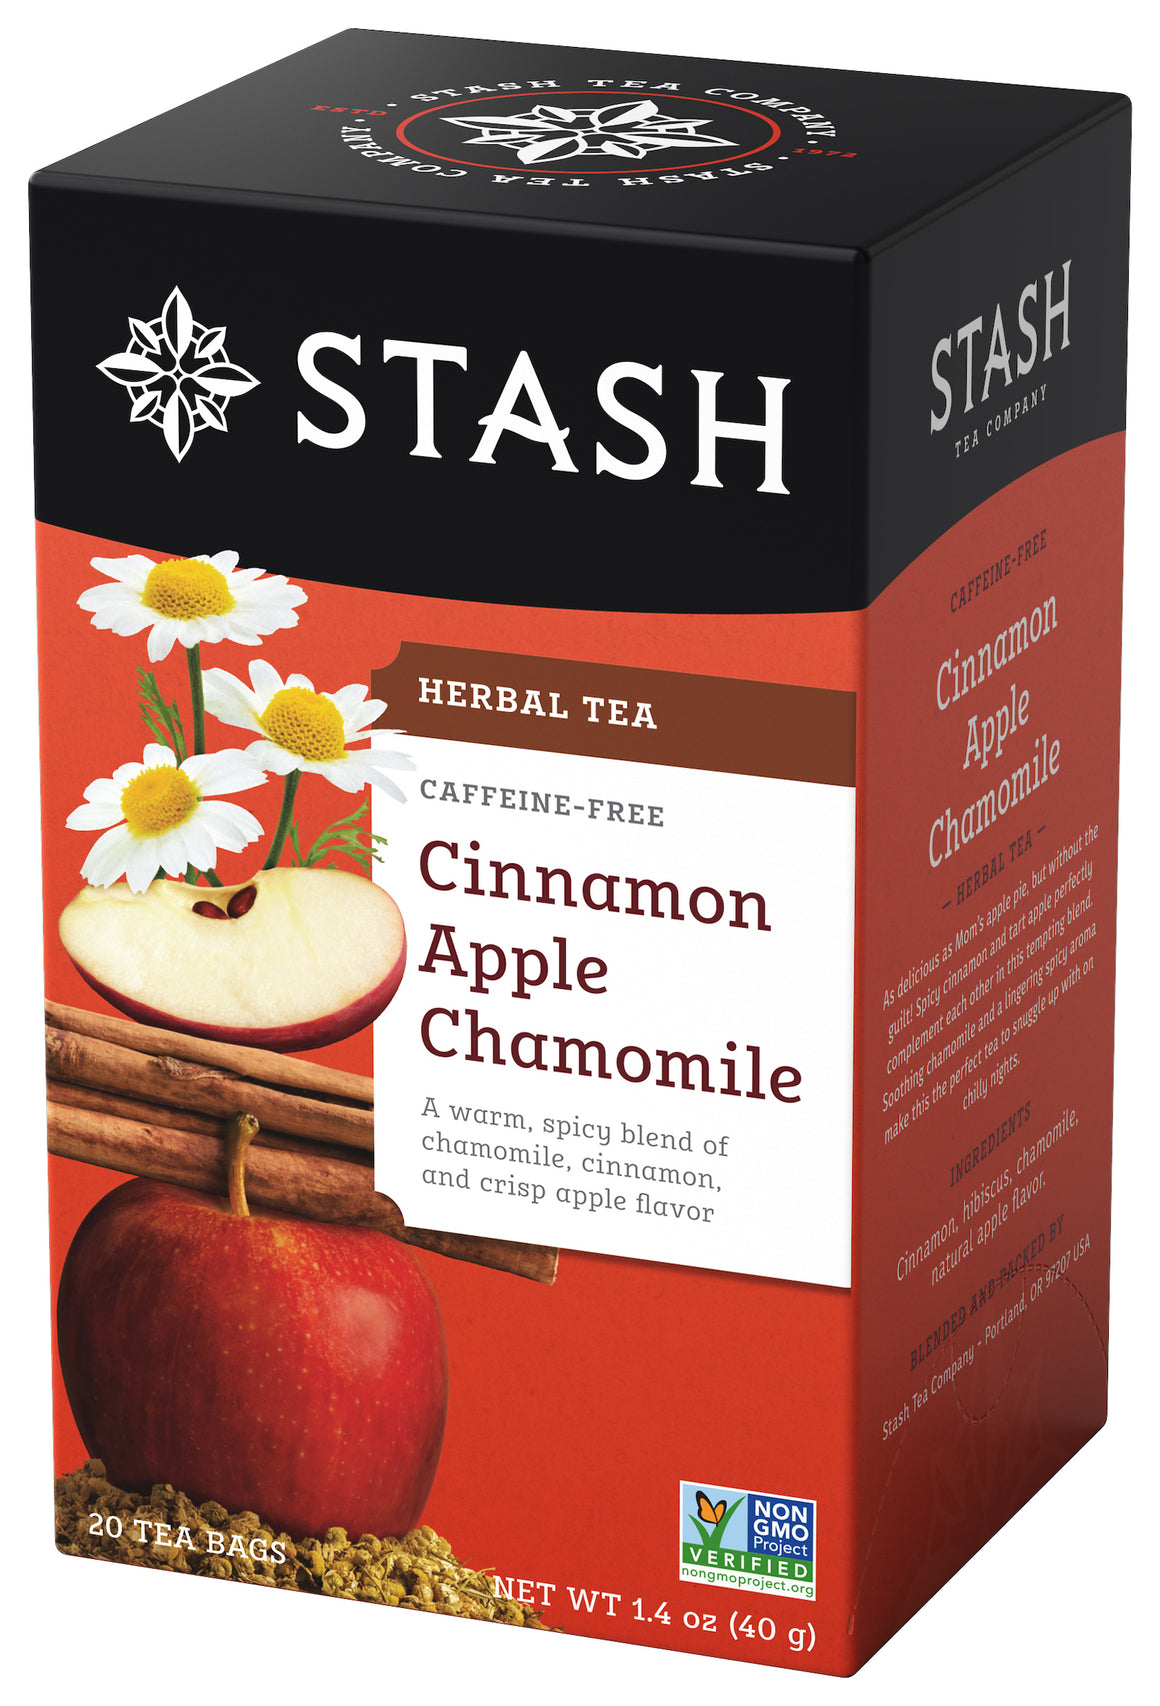 Cinnamon Apple Chamomile